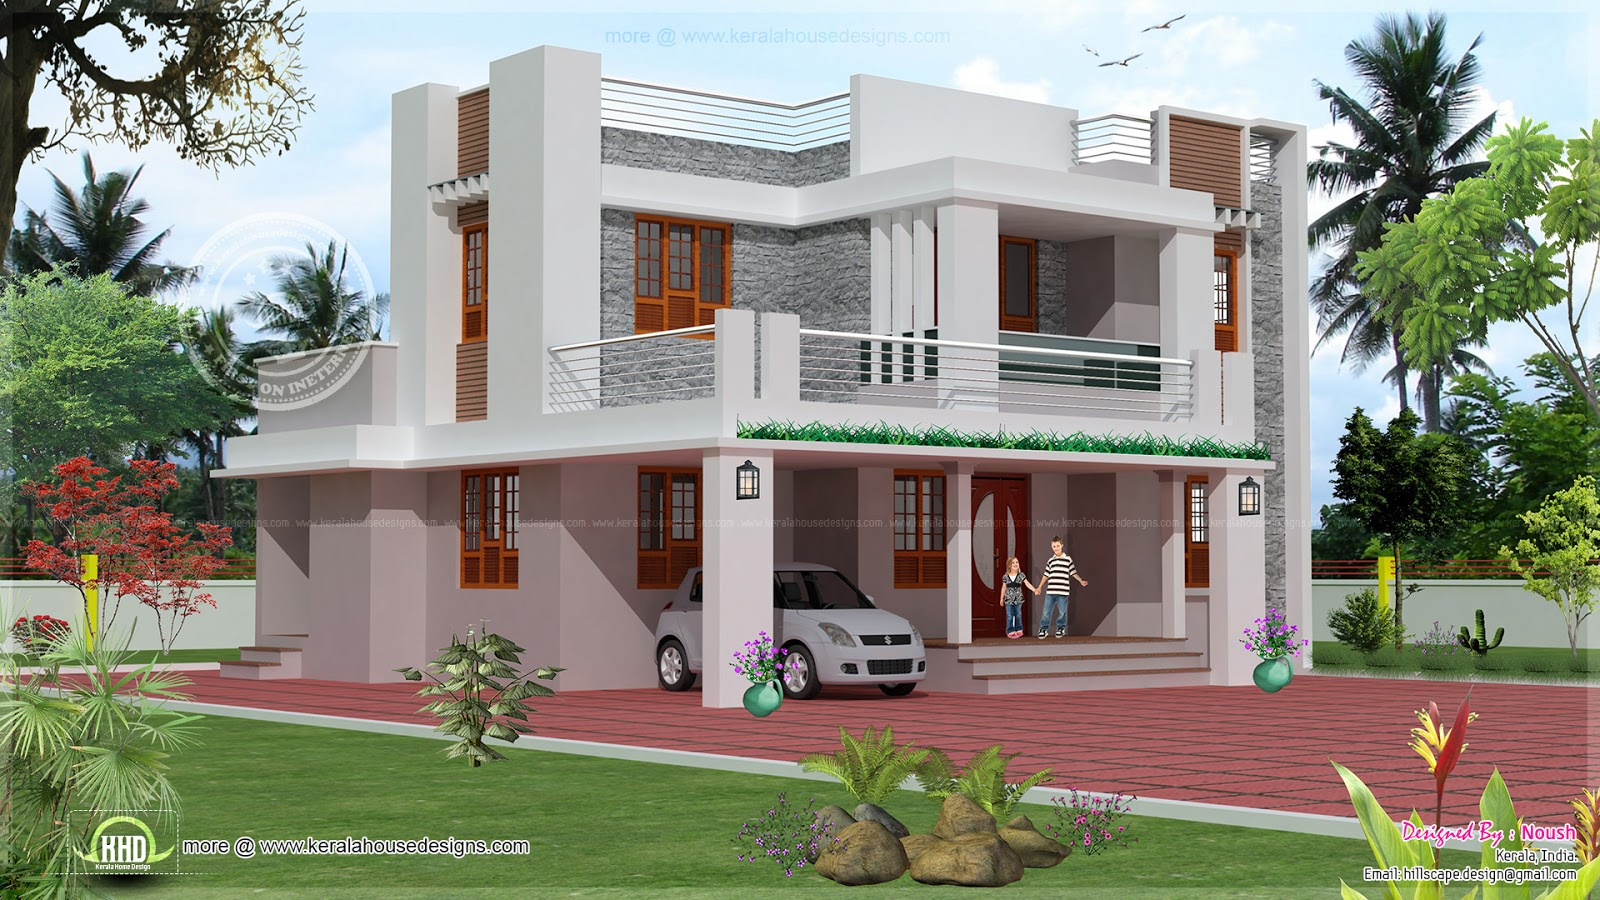 February 2014 house design plans for Two storey building designs